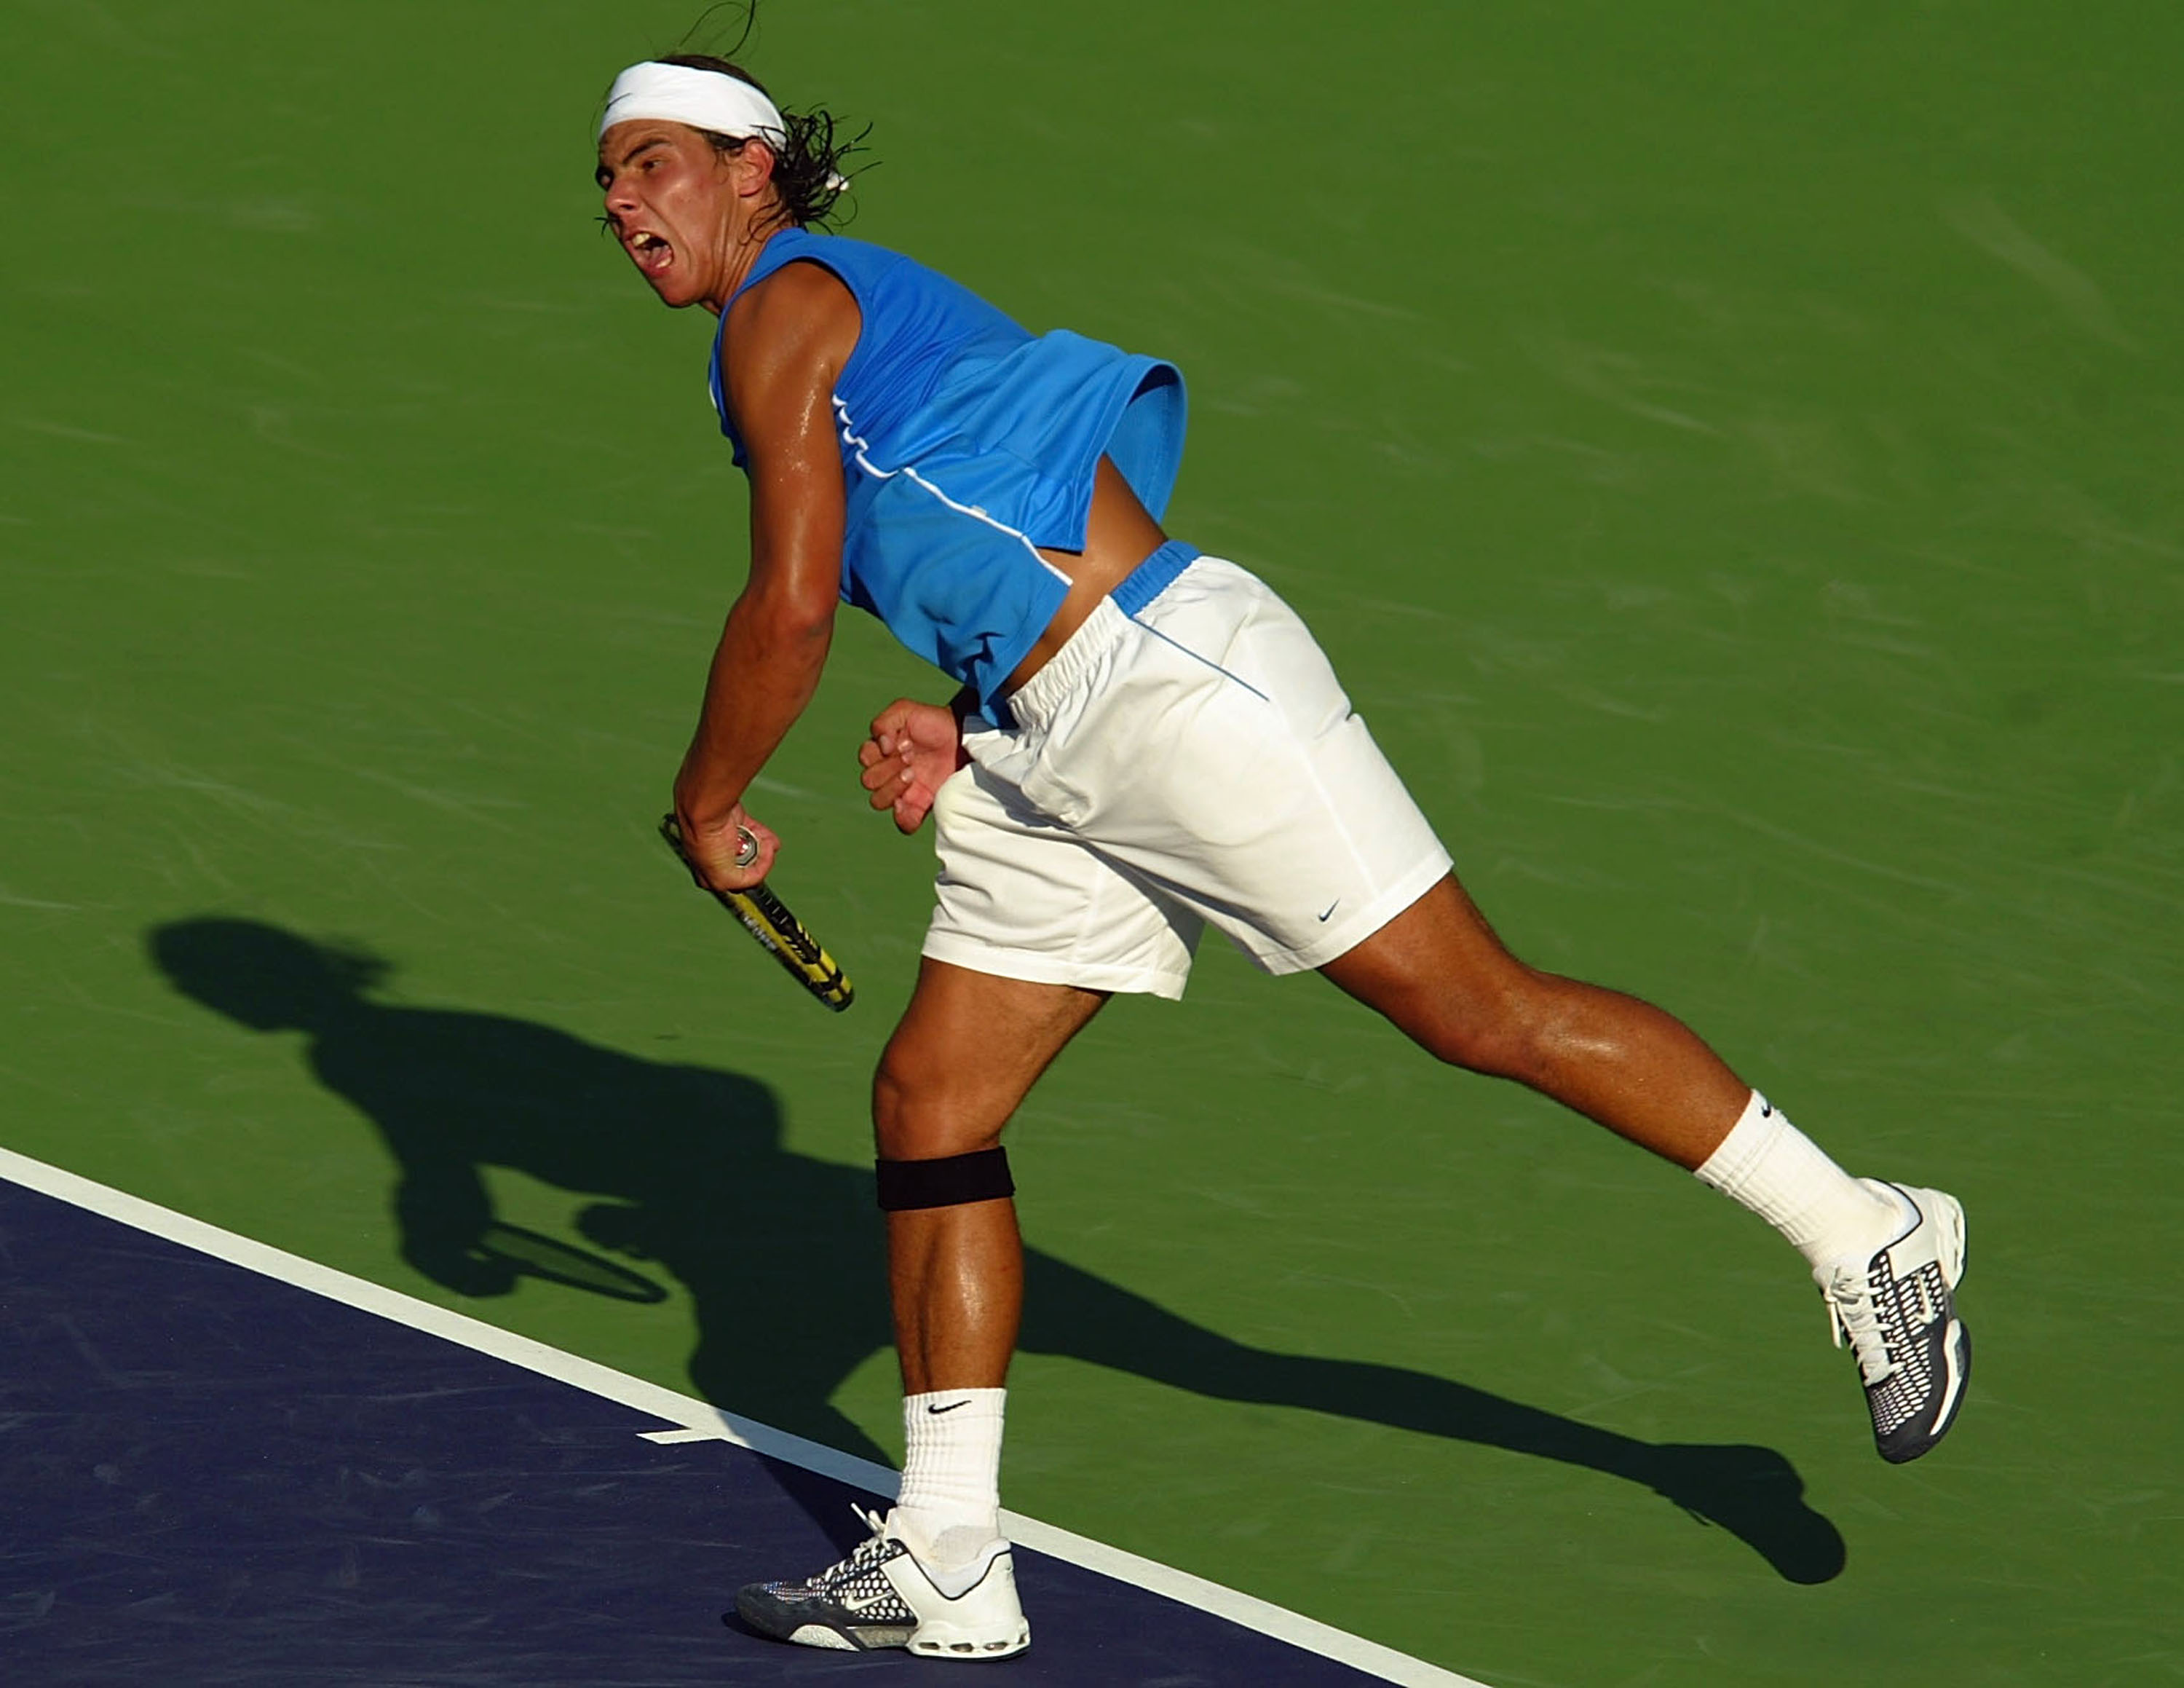 Nadal continues the aggressive look of his soon-to-be signature sleeveless shirt and makes his transformation into a style icon.